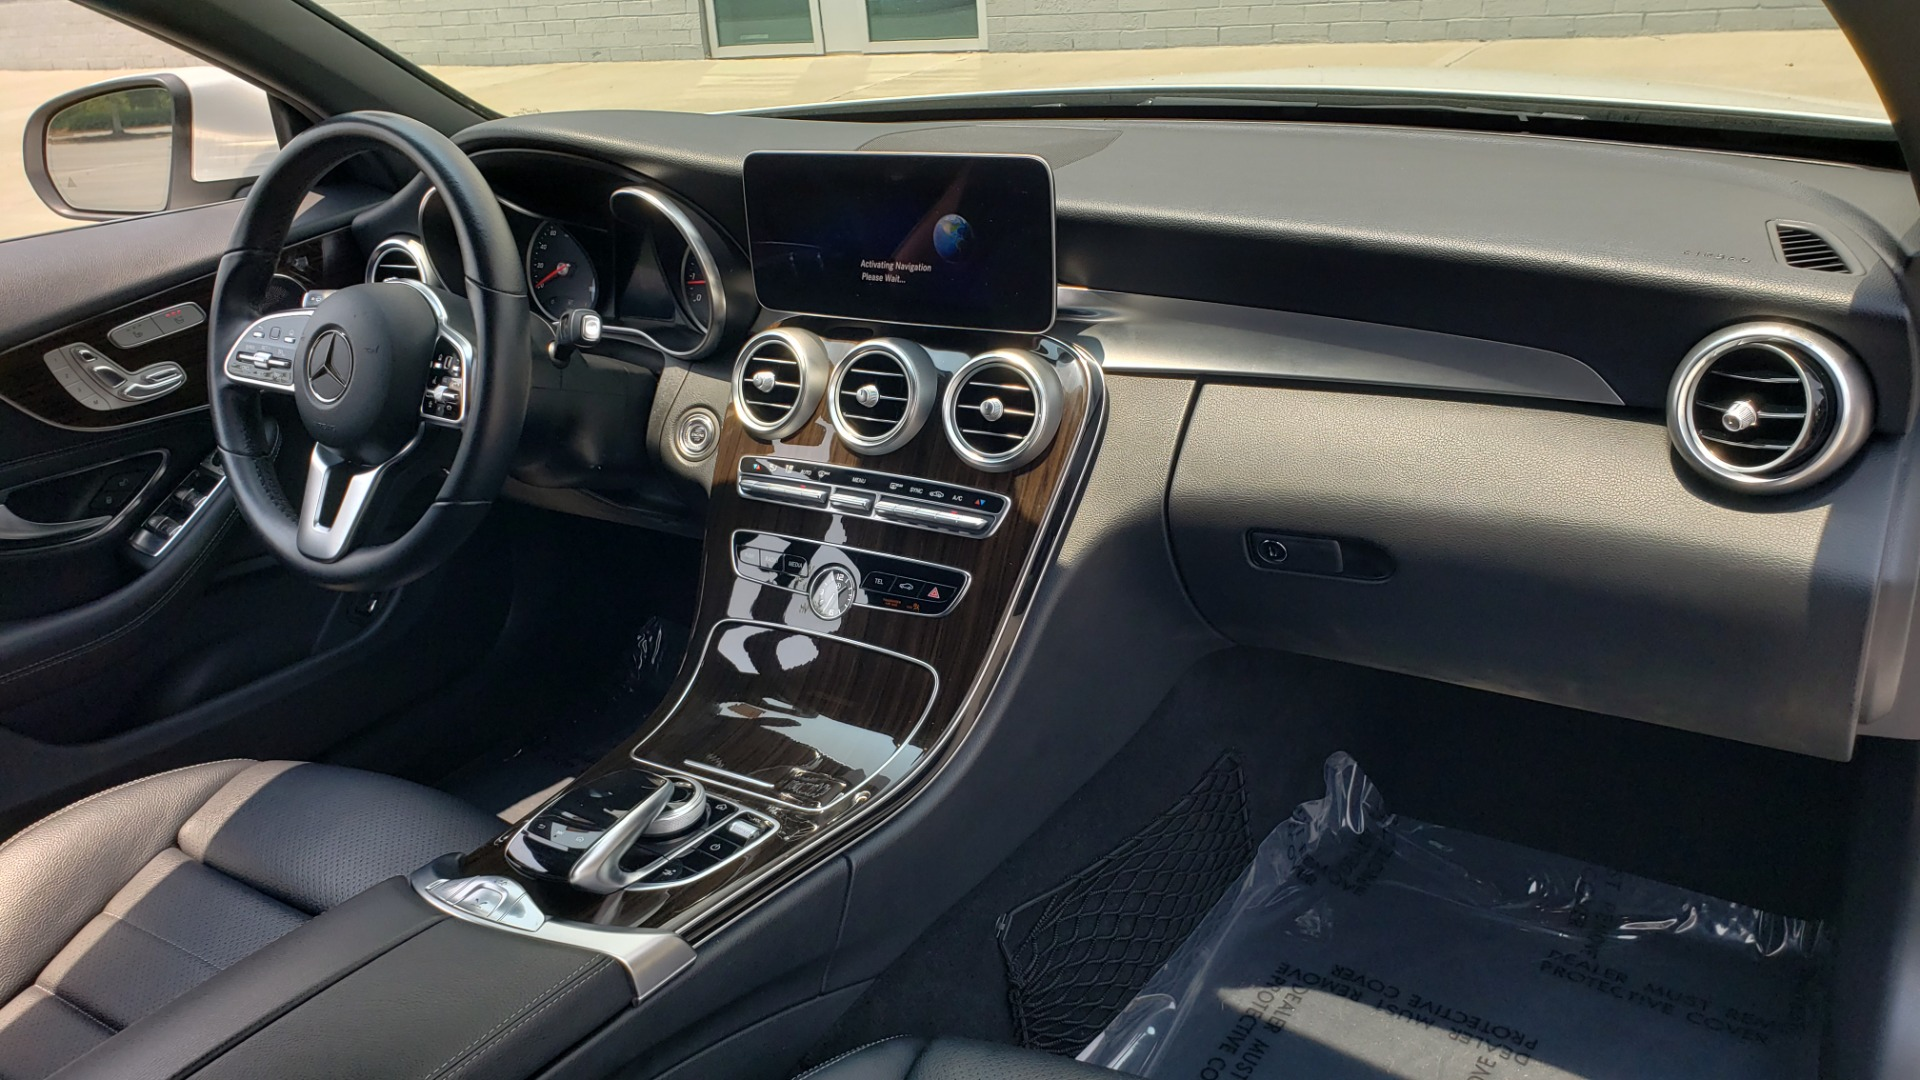 Used 2019 Mercedes-Benz C-CLASS C 300 CABRIOLET 2.0L / AUTO / NAV / HD RADIO / REARVIEW for sale $46,995 at Formula Imports in Charlotte NC 28227 68